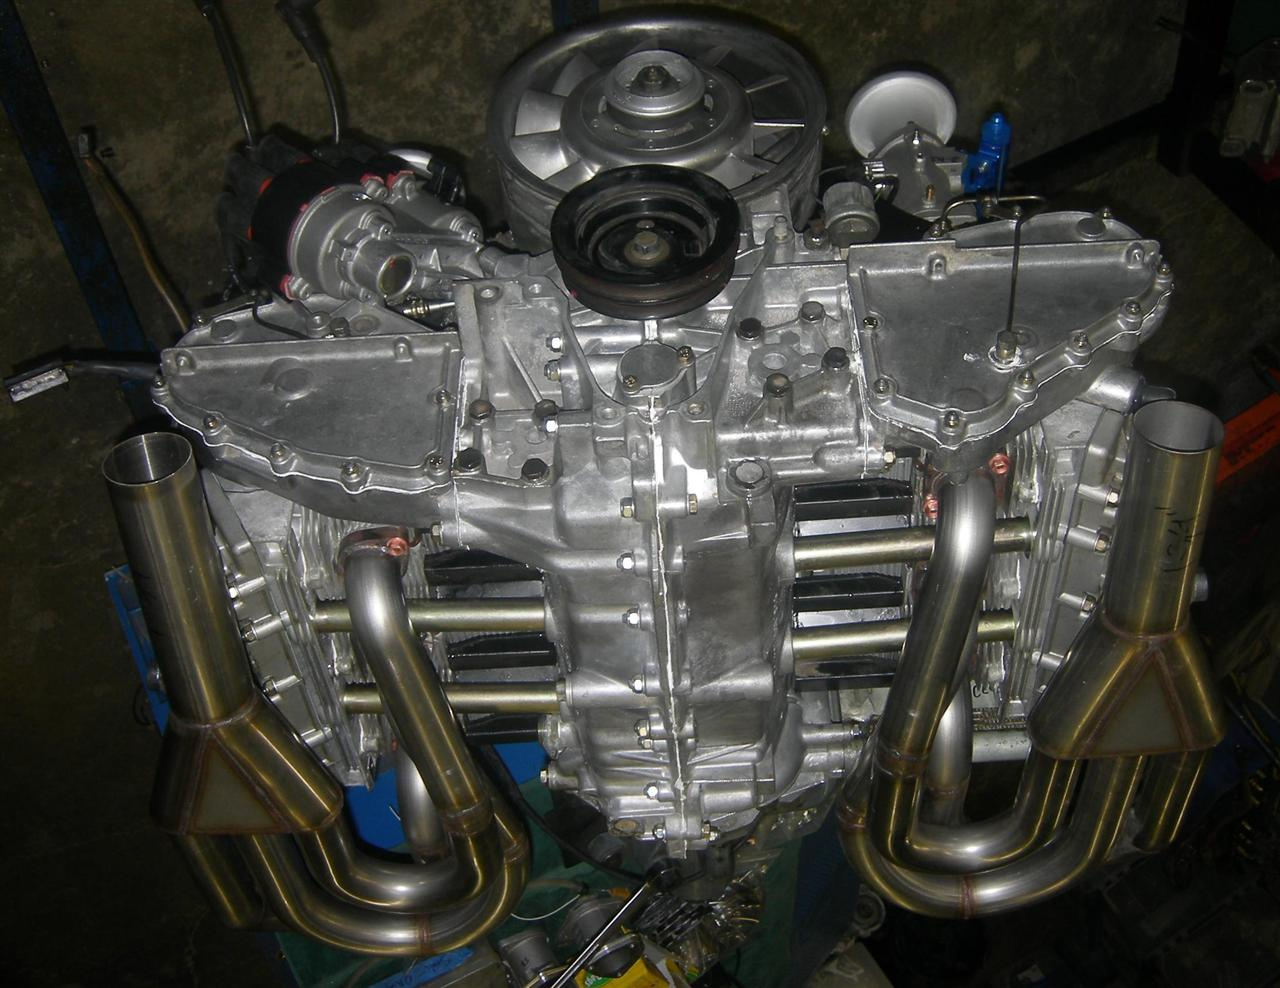 DSCN1221?w=821 pc34 build instant g 7.3 Powerstroke Diesel Crate Engine at bakdesigns.co